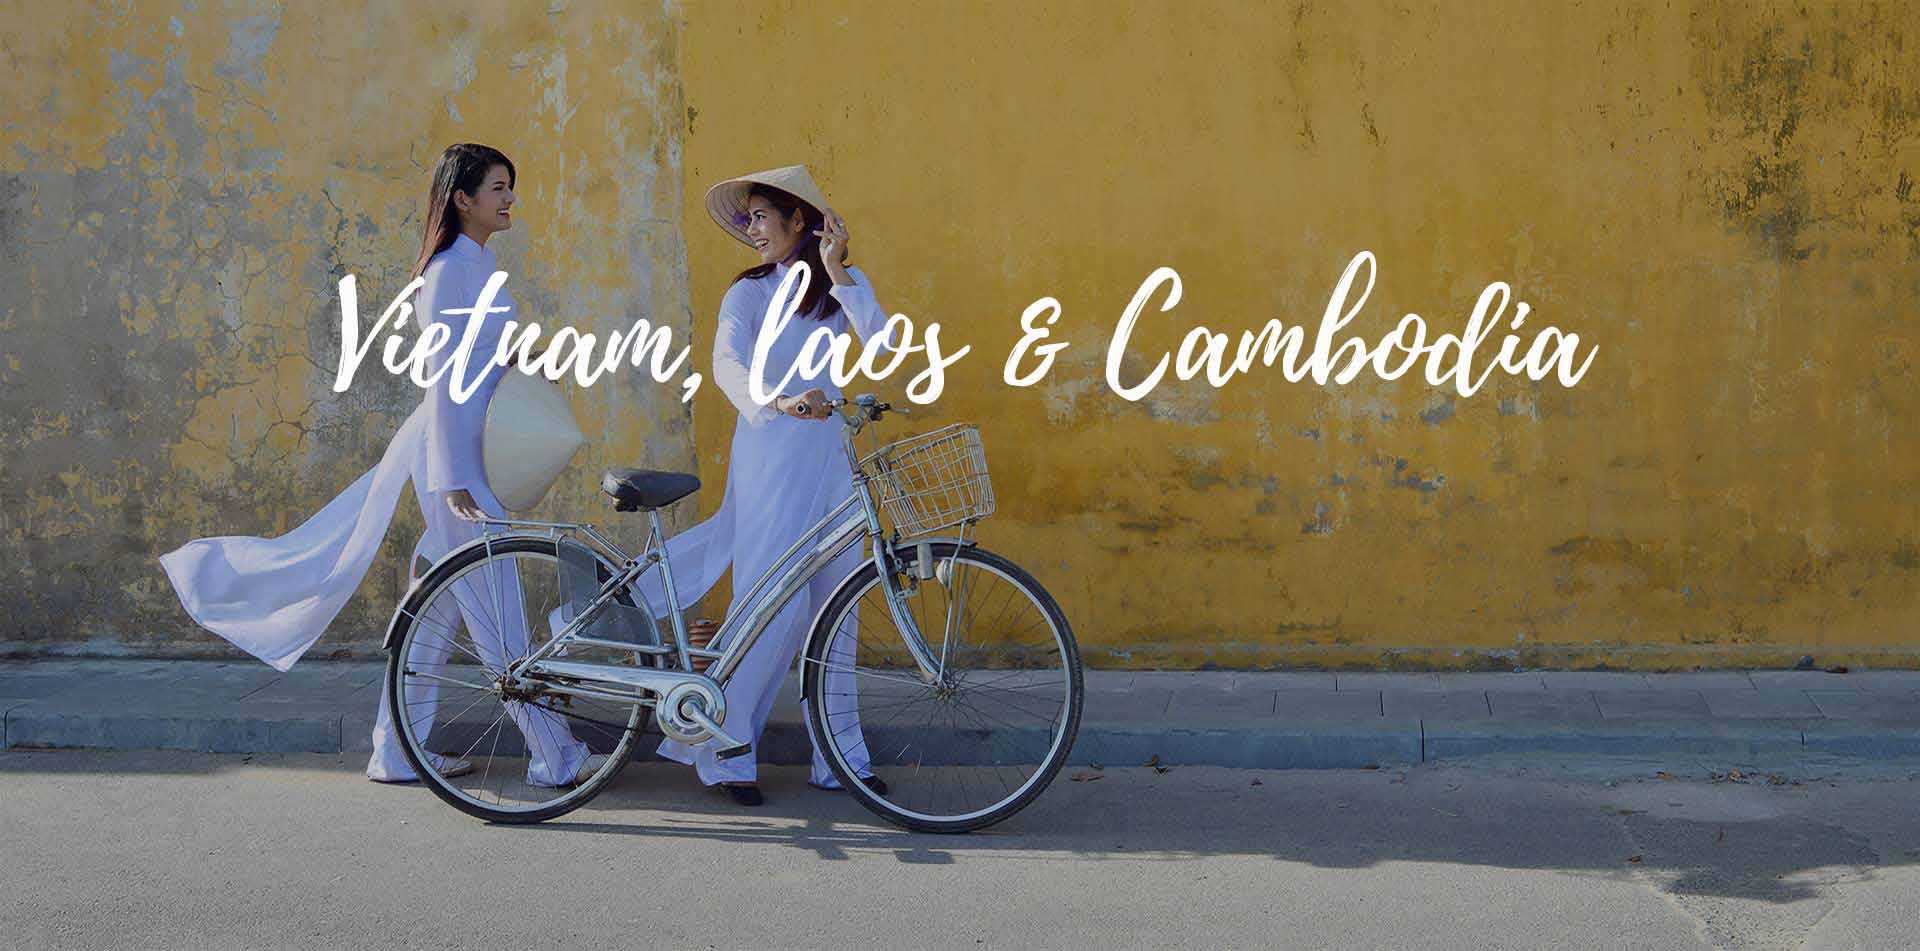 Asia Vietnam Laos and Cambodia local women wearing white walking with a bike on Hoi An street - luxury vacation destinations